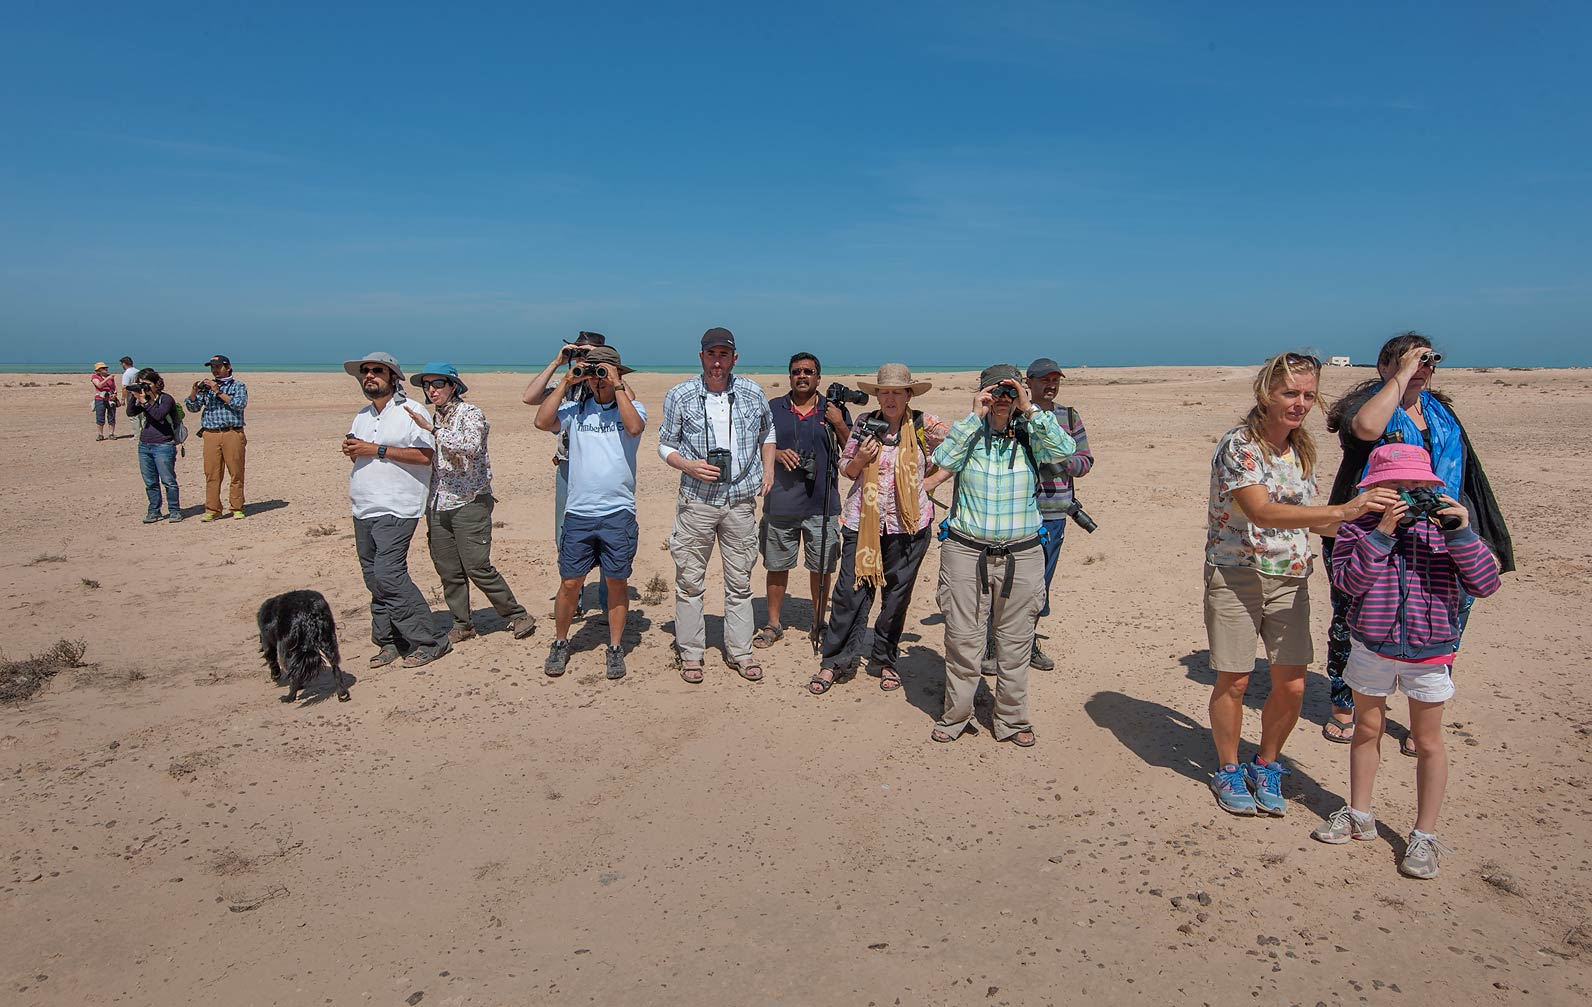 QNHG (Qatar Natural History Group) watching birds...peninsula. Ruwais, Northern Qatar